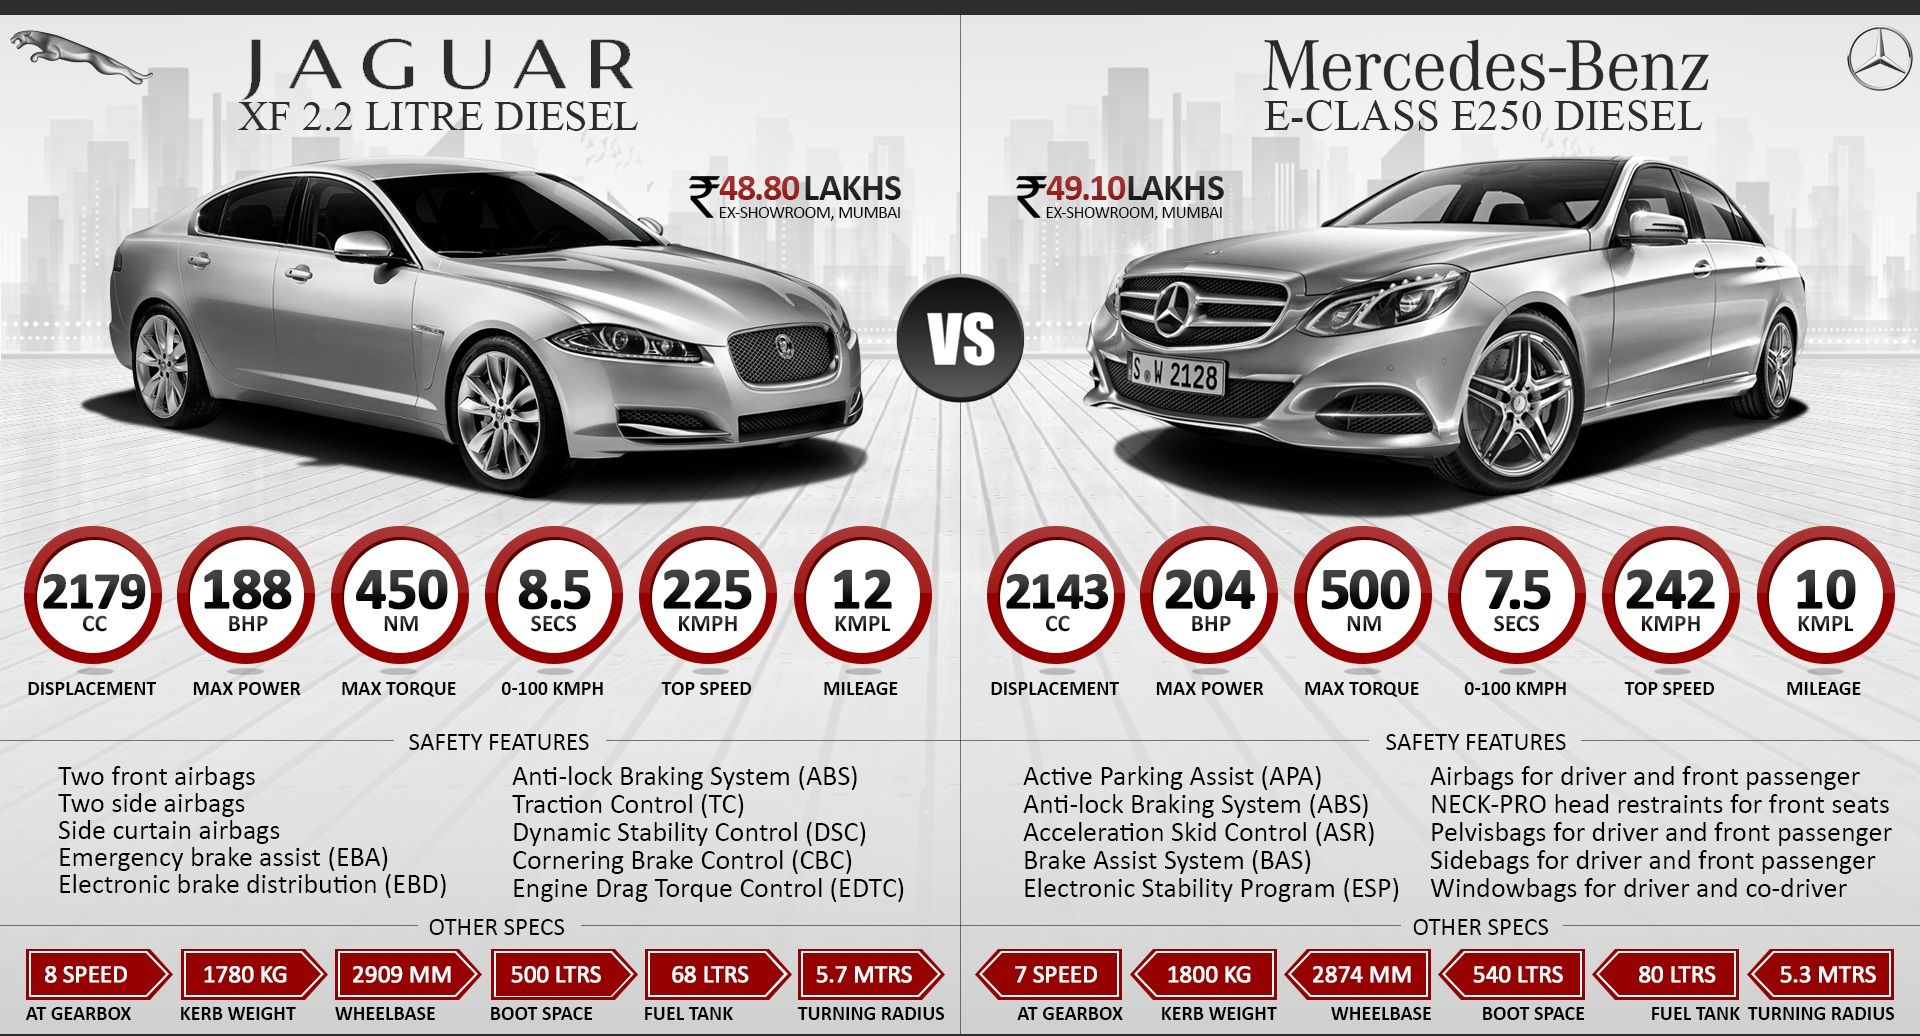 Jaguar XF 2.2 Diesel vs. Mercedes E-Class E250 Diesel  #‎WoW‬ ‪#‎WorkshoponWheelz‬ ‪#‎CarServiceInChandigarh‬  #CarMaintenanceInChandigarh  http://workshoponwheelz.blogspot.in/    Workshop on wheelz